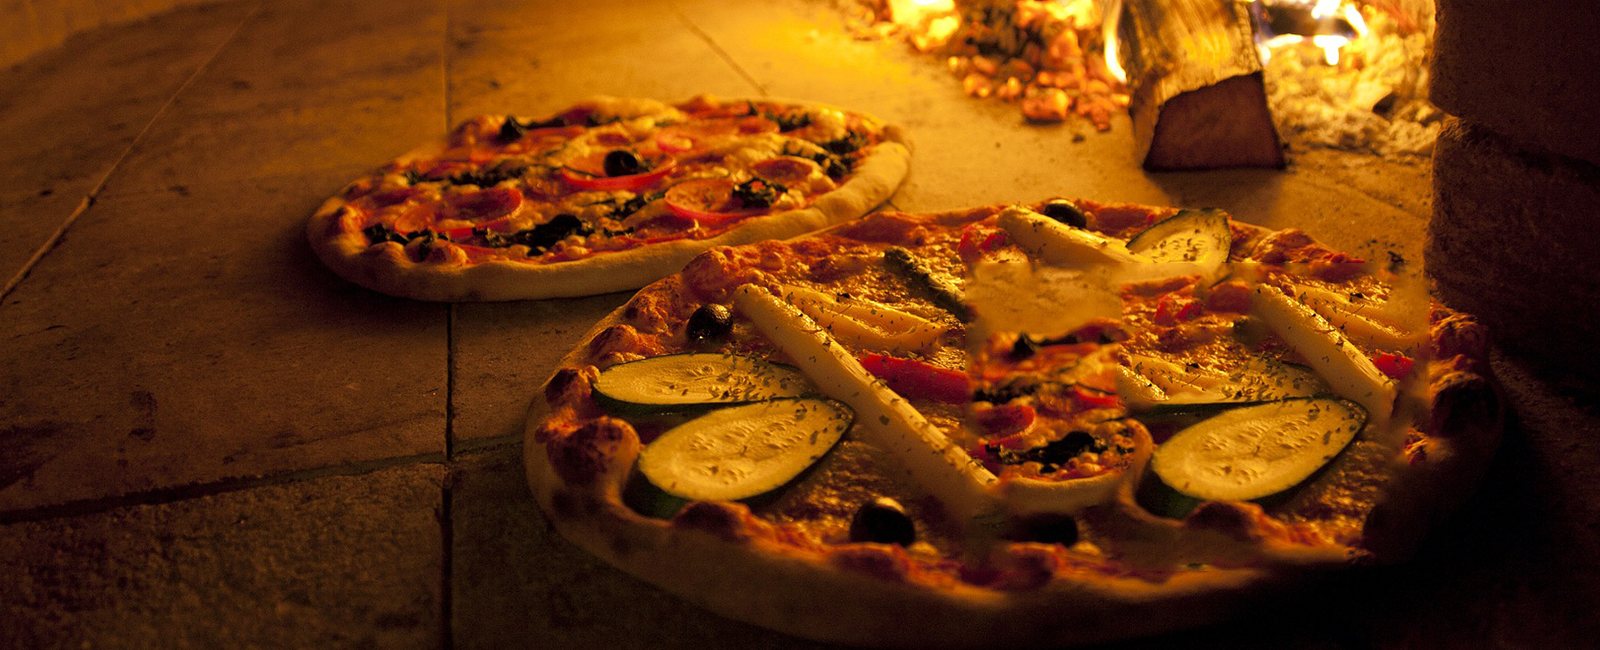 Aroma Woodfired Pizza Aroma Woodfired Pizza Plymouth